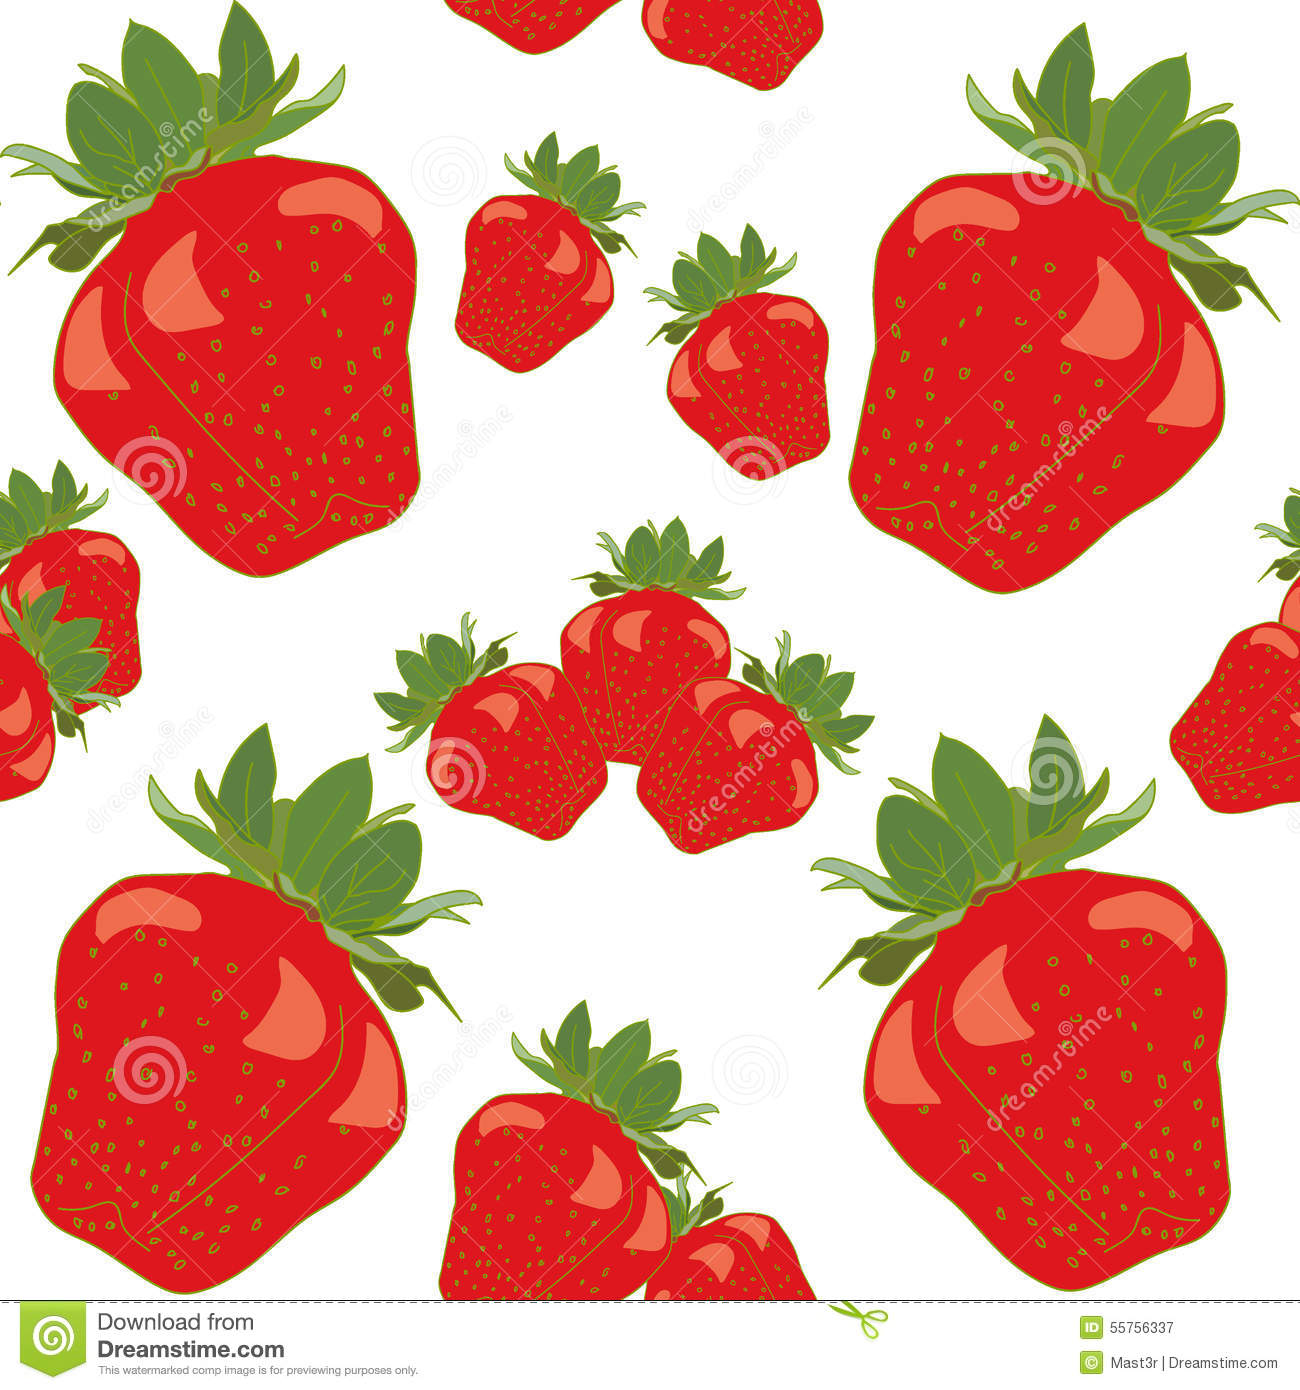 Fruit rouge Berry Colorful Seamless de fraise